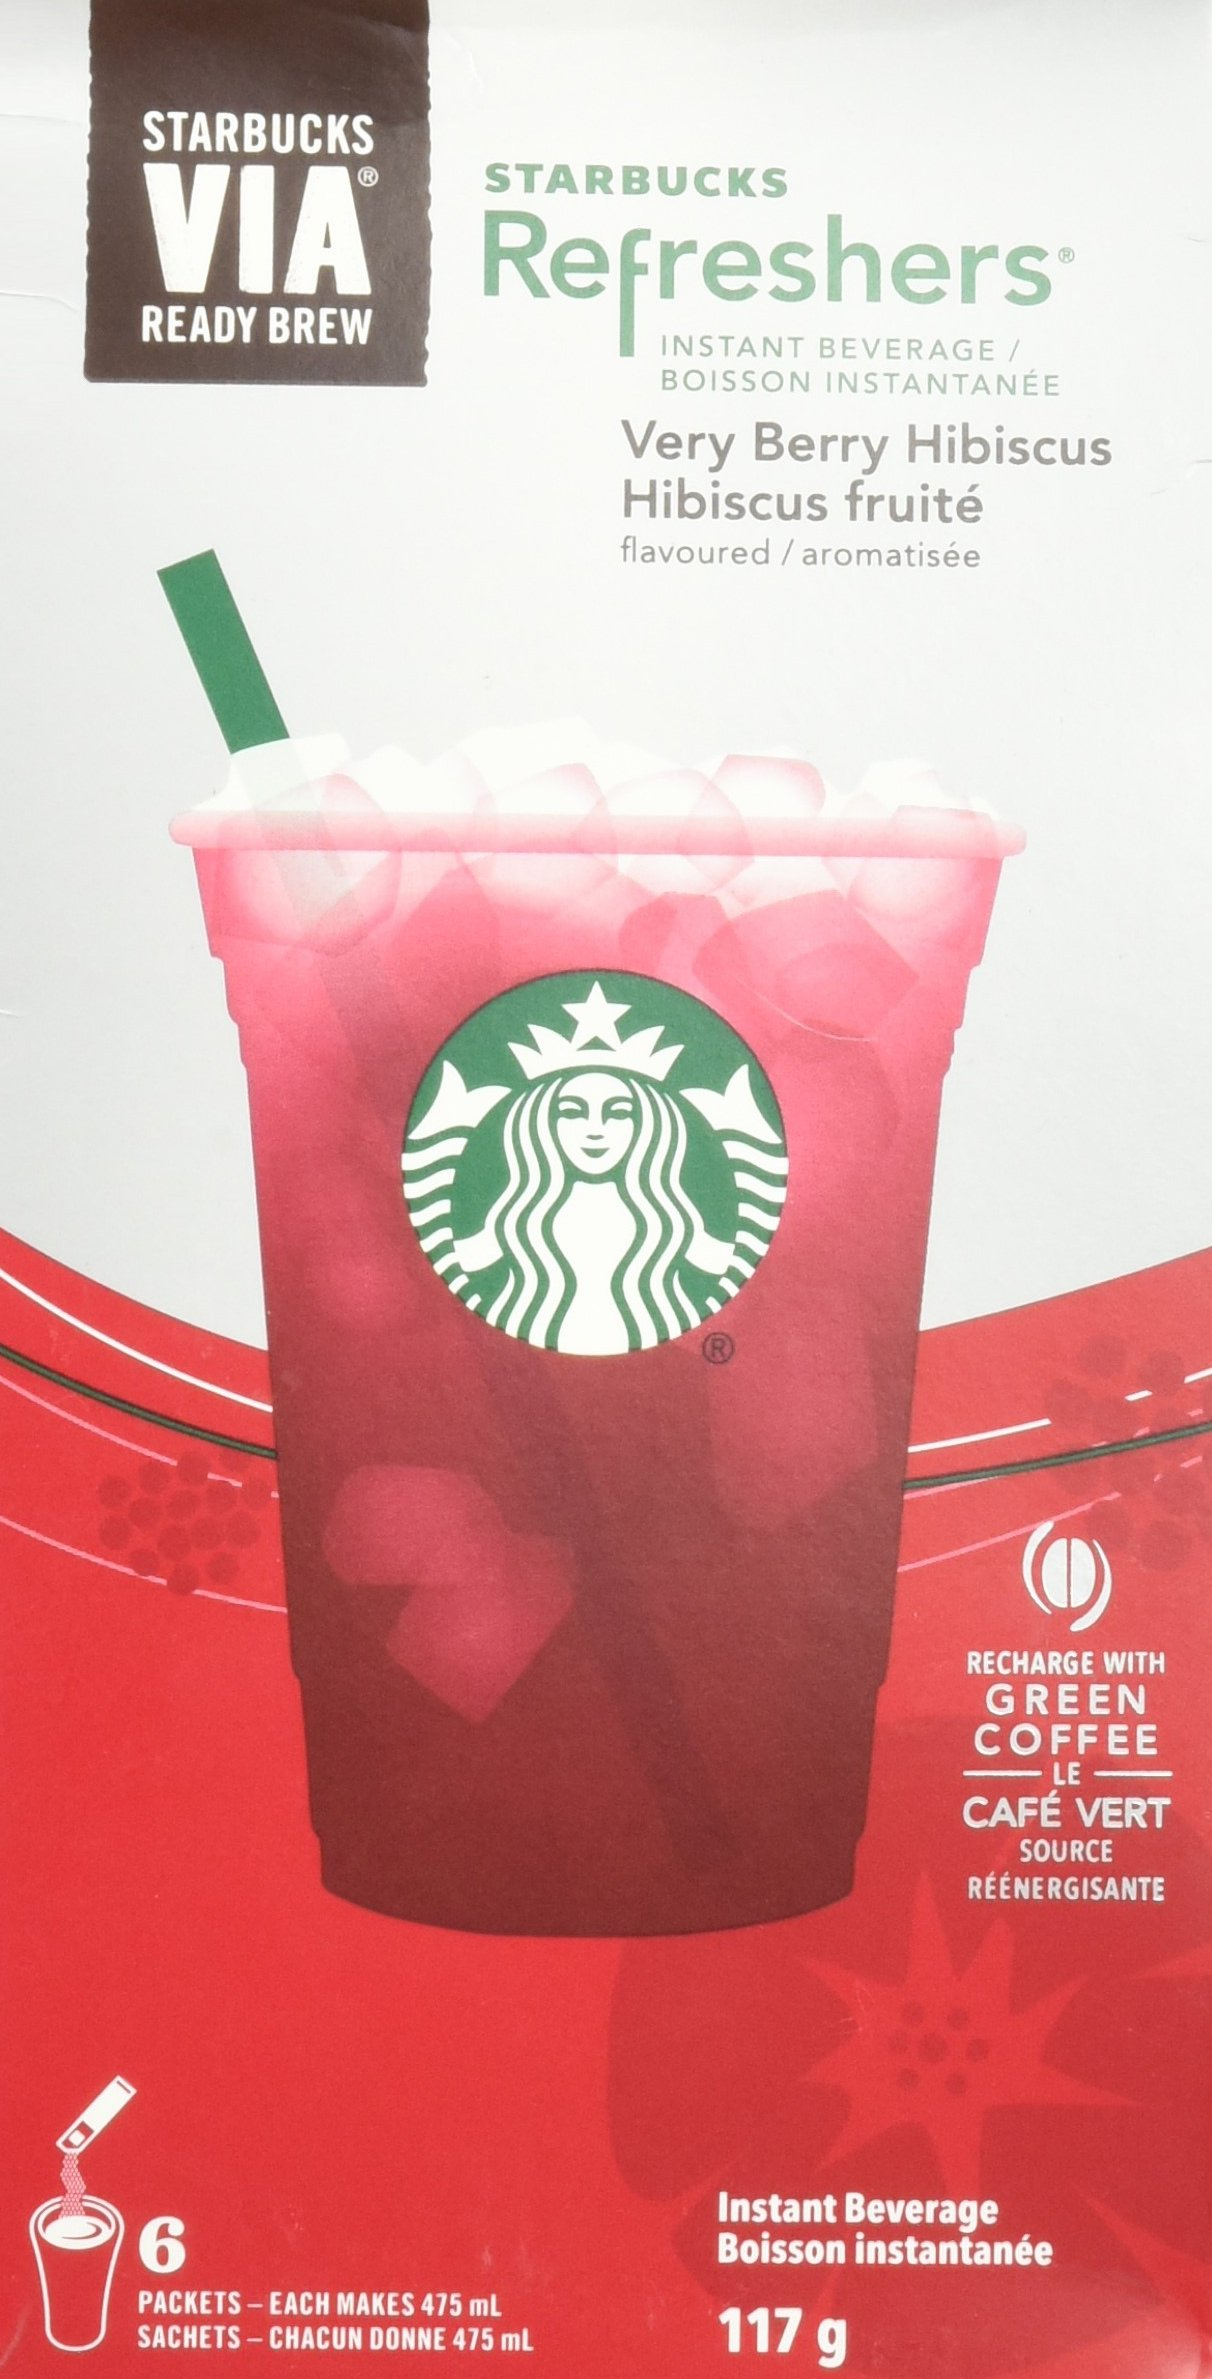 Starbucks VIA Refreshers Very Berry Hibiscus 6 Packets (Pack of 3, 18 Packets Total)